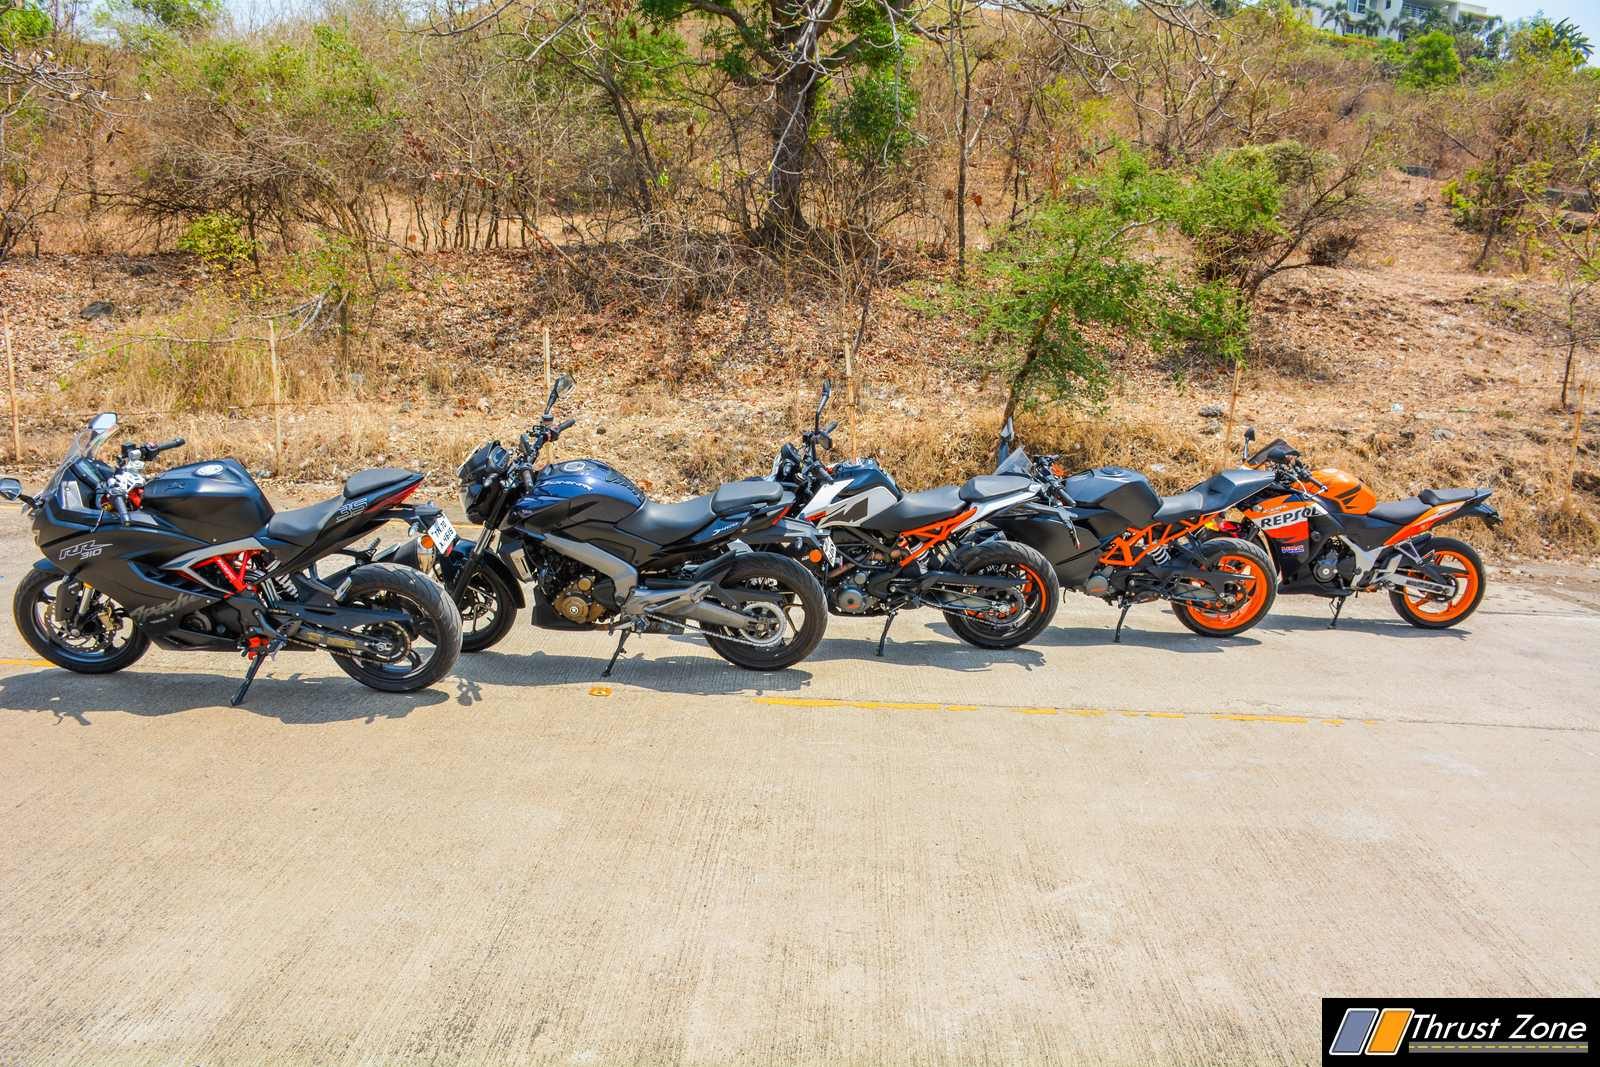 ApacheRR310-vs-Dominar-400-vs-CBR250R-KTM-RC-200-Duke250-Comparison-Review-17